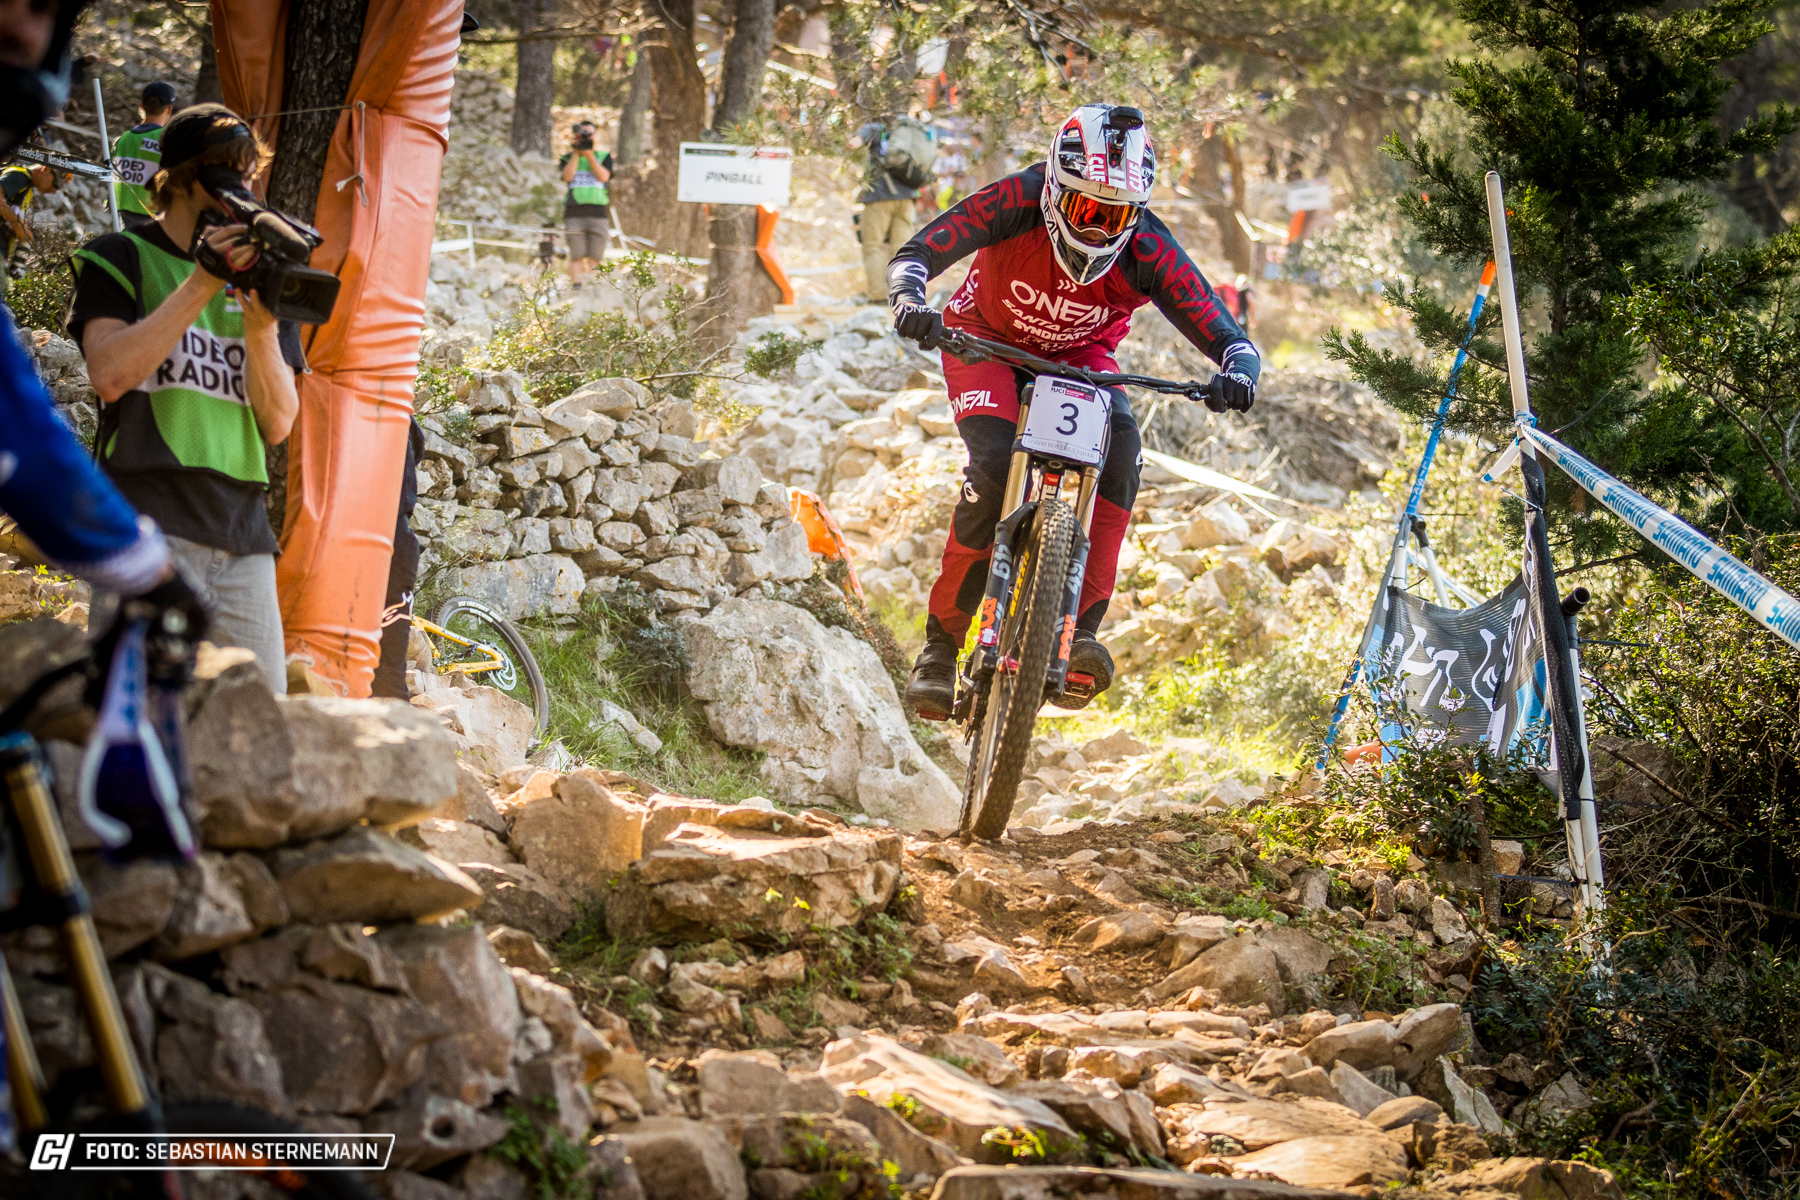 Friday Losinj Worldcup 290 by Sternemann